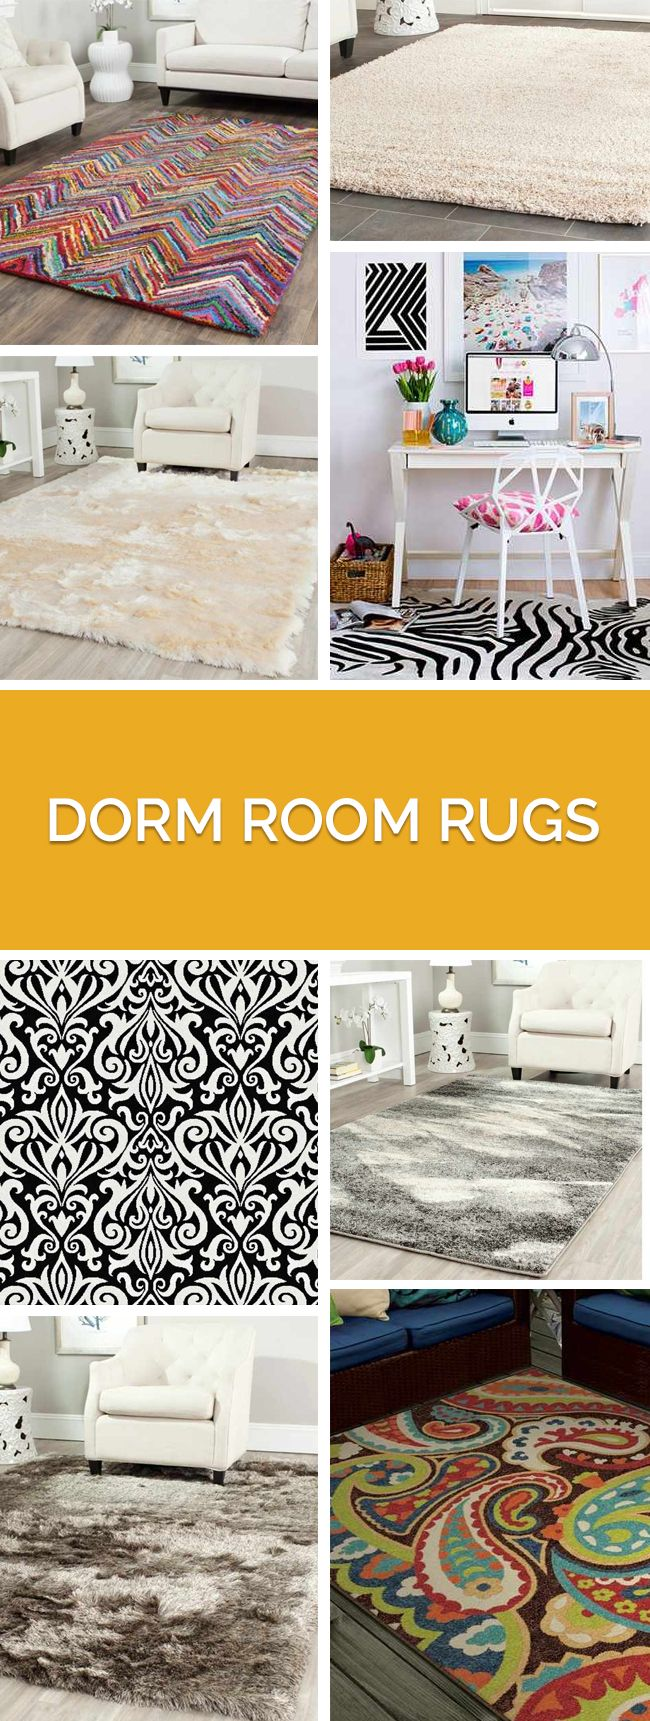 Dorm Room Rugs That Fit Every Budget Chic Styles And